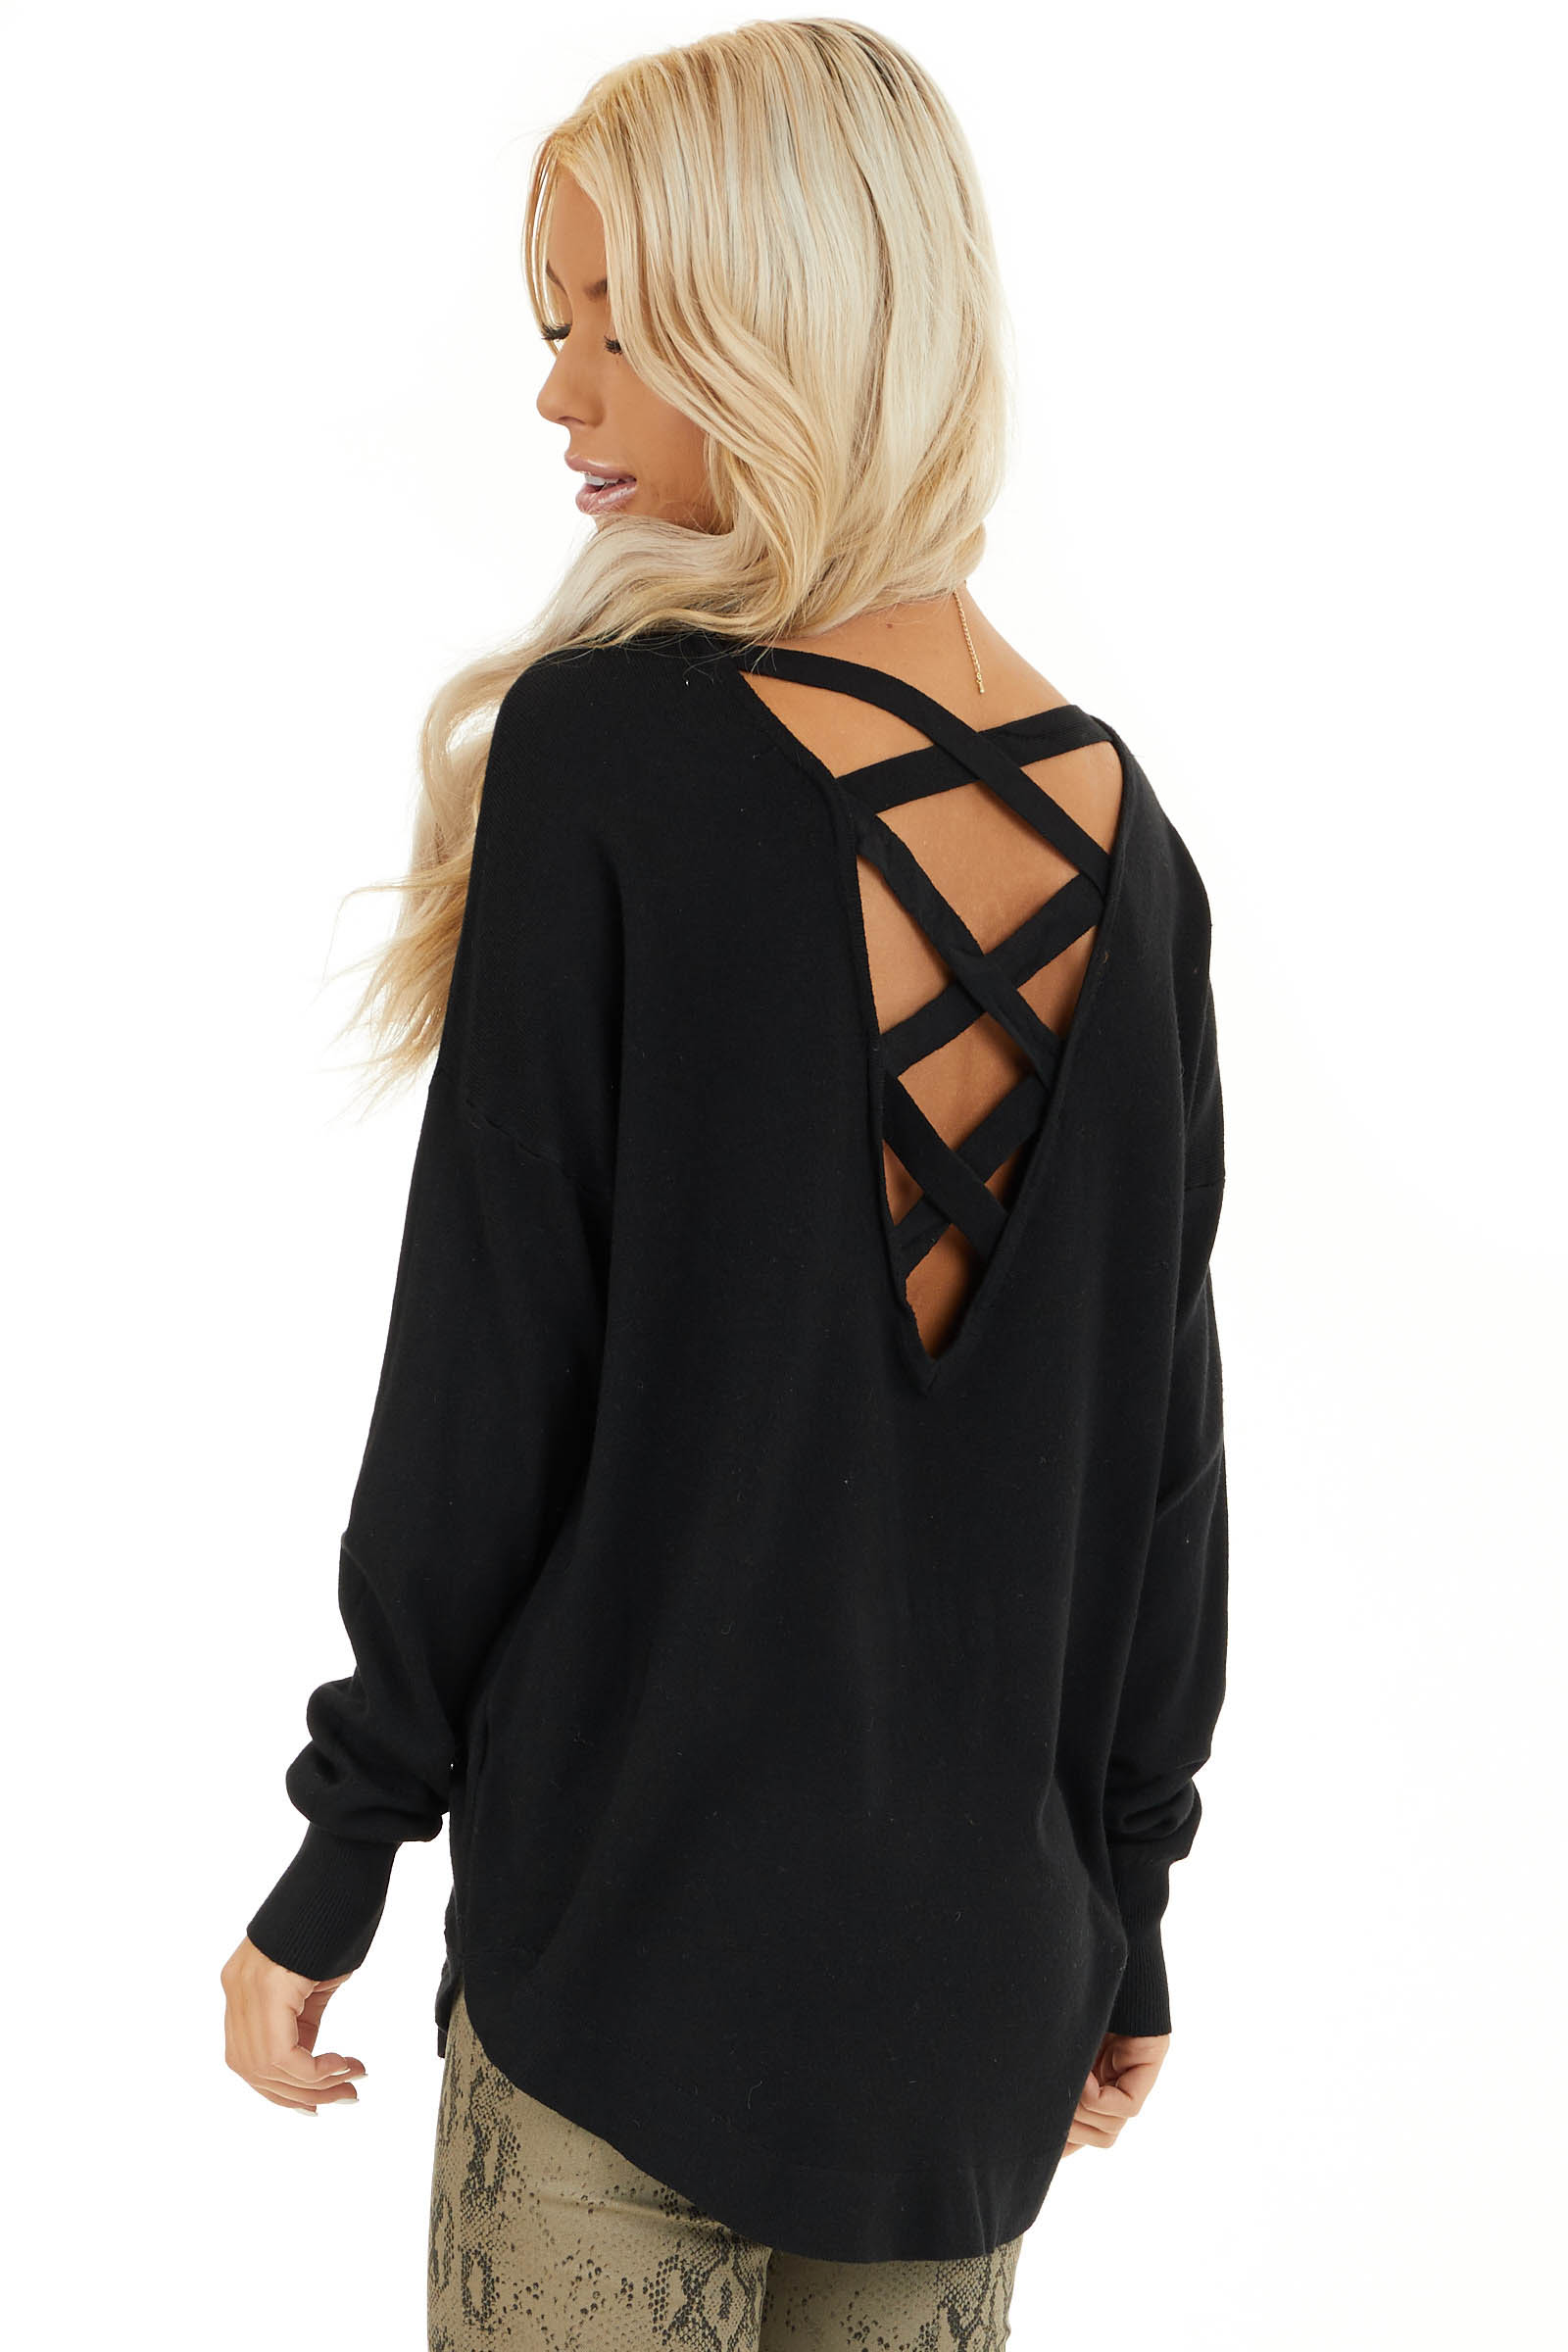 Black V Neck Top with Criss Cross Back Detail back side close up